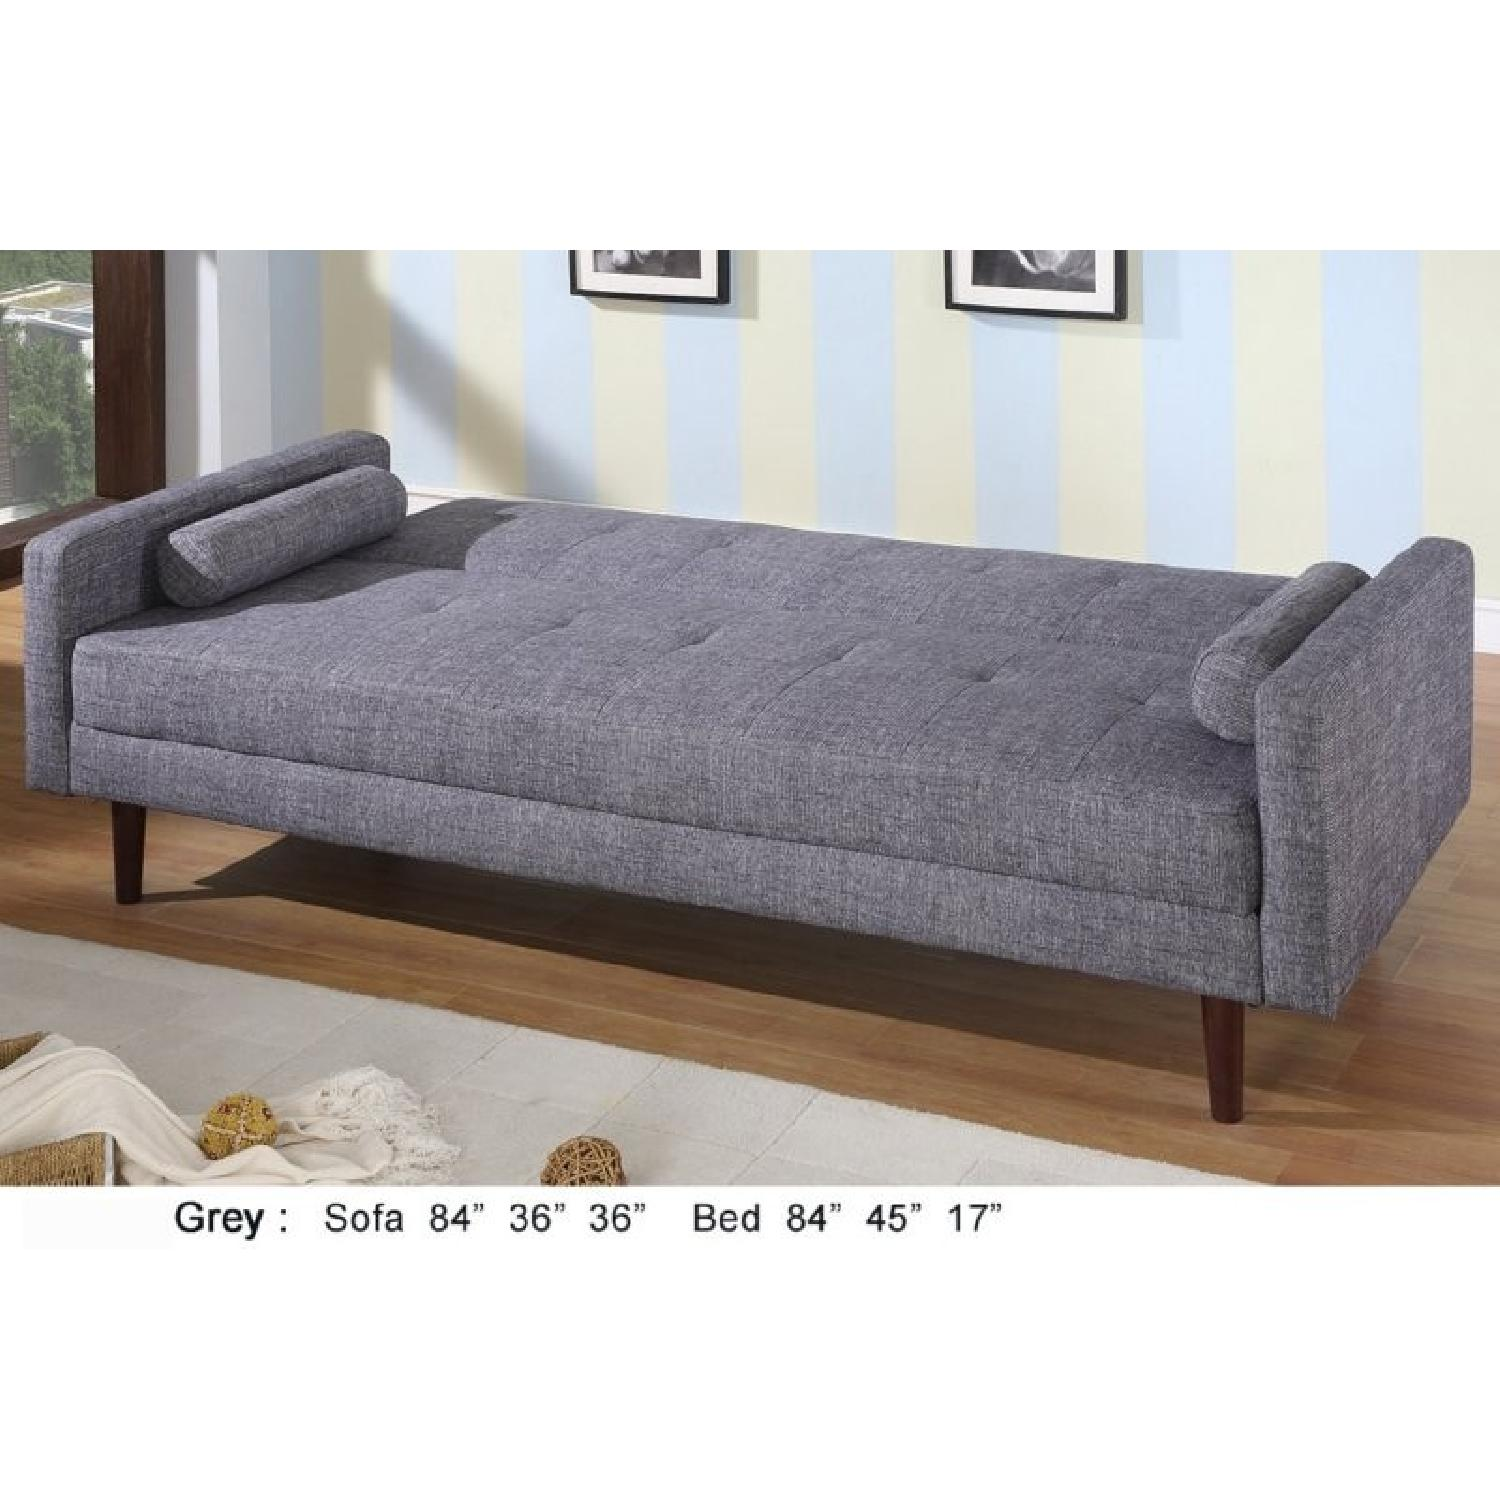 Modern Grey Linen Fabric Sofabed - image-1